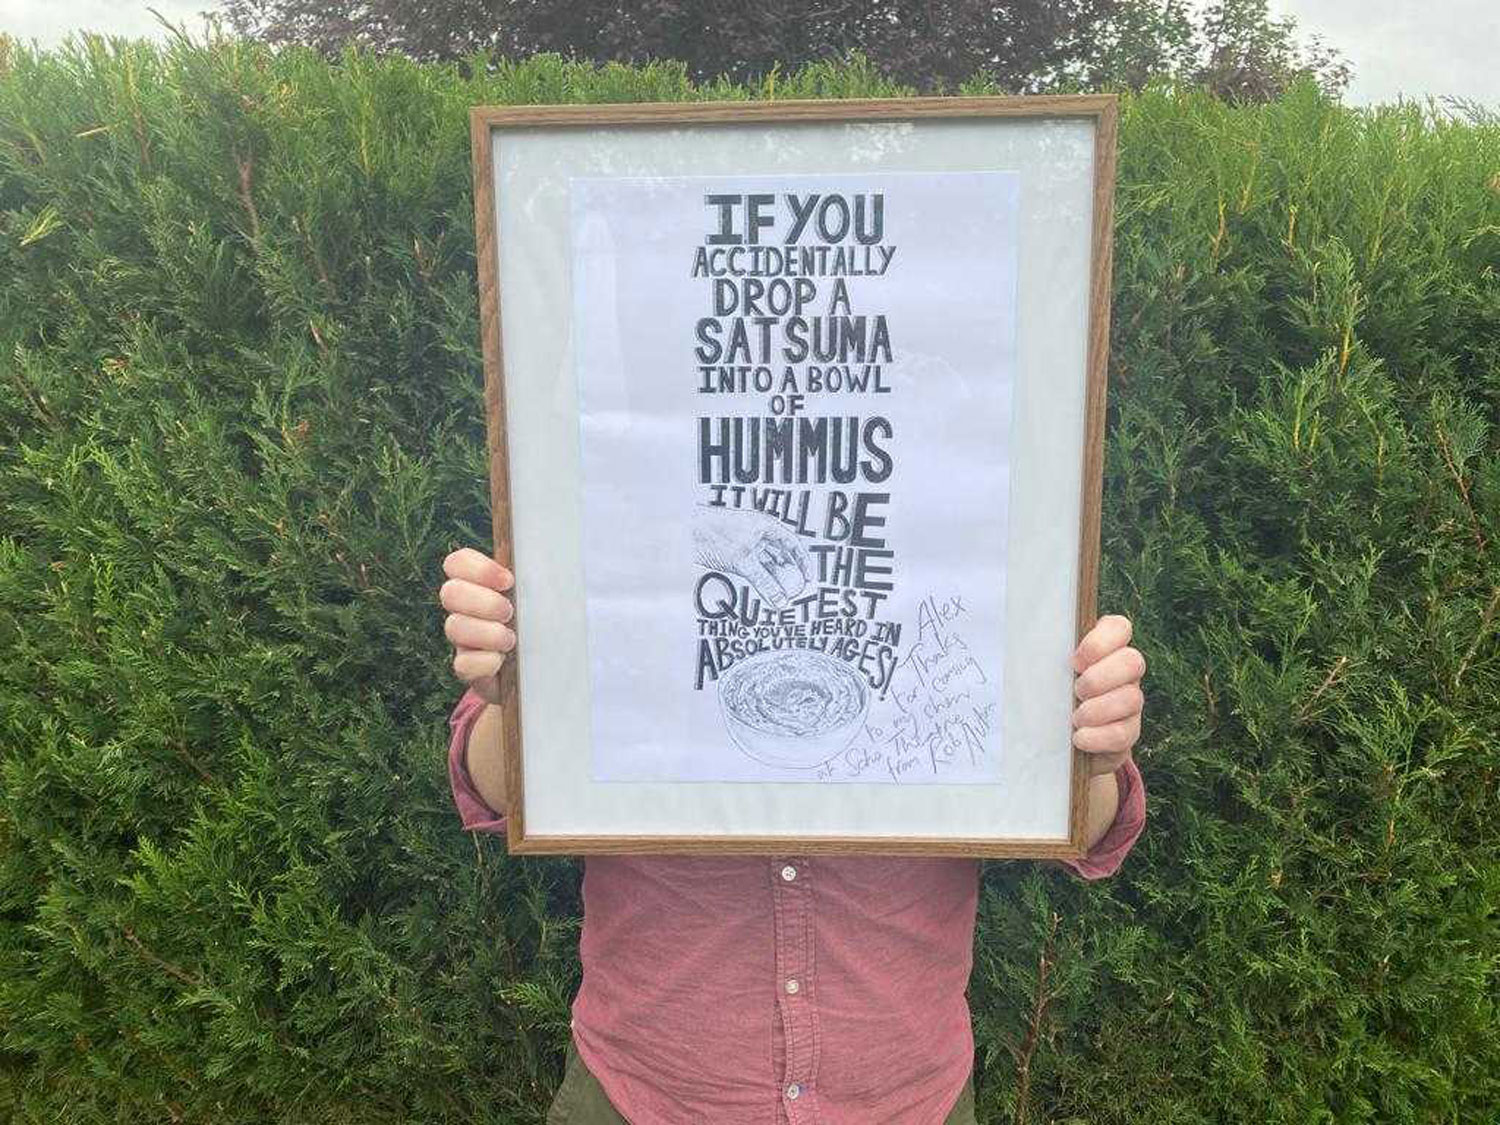 Alex from Cog holds up an illustrated print in a wooden frame signed by the artist Rob Auton